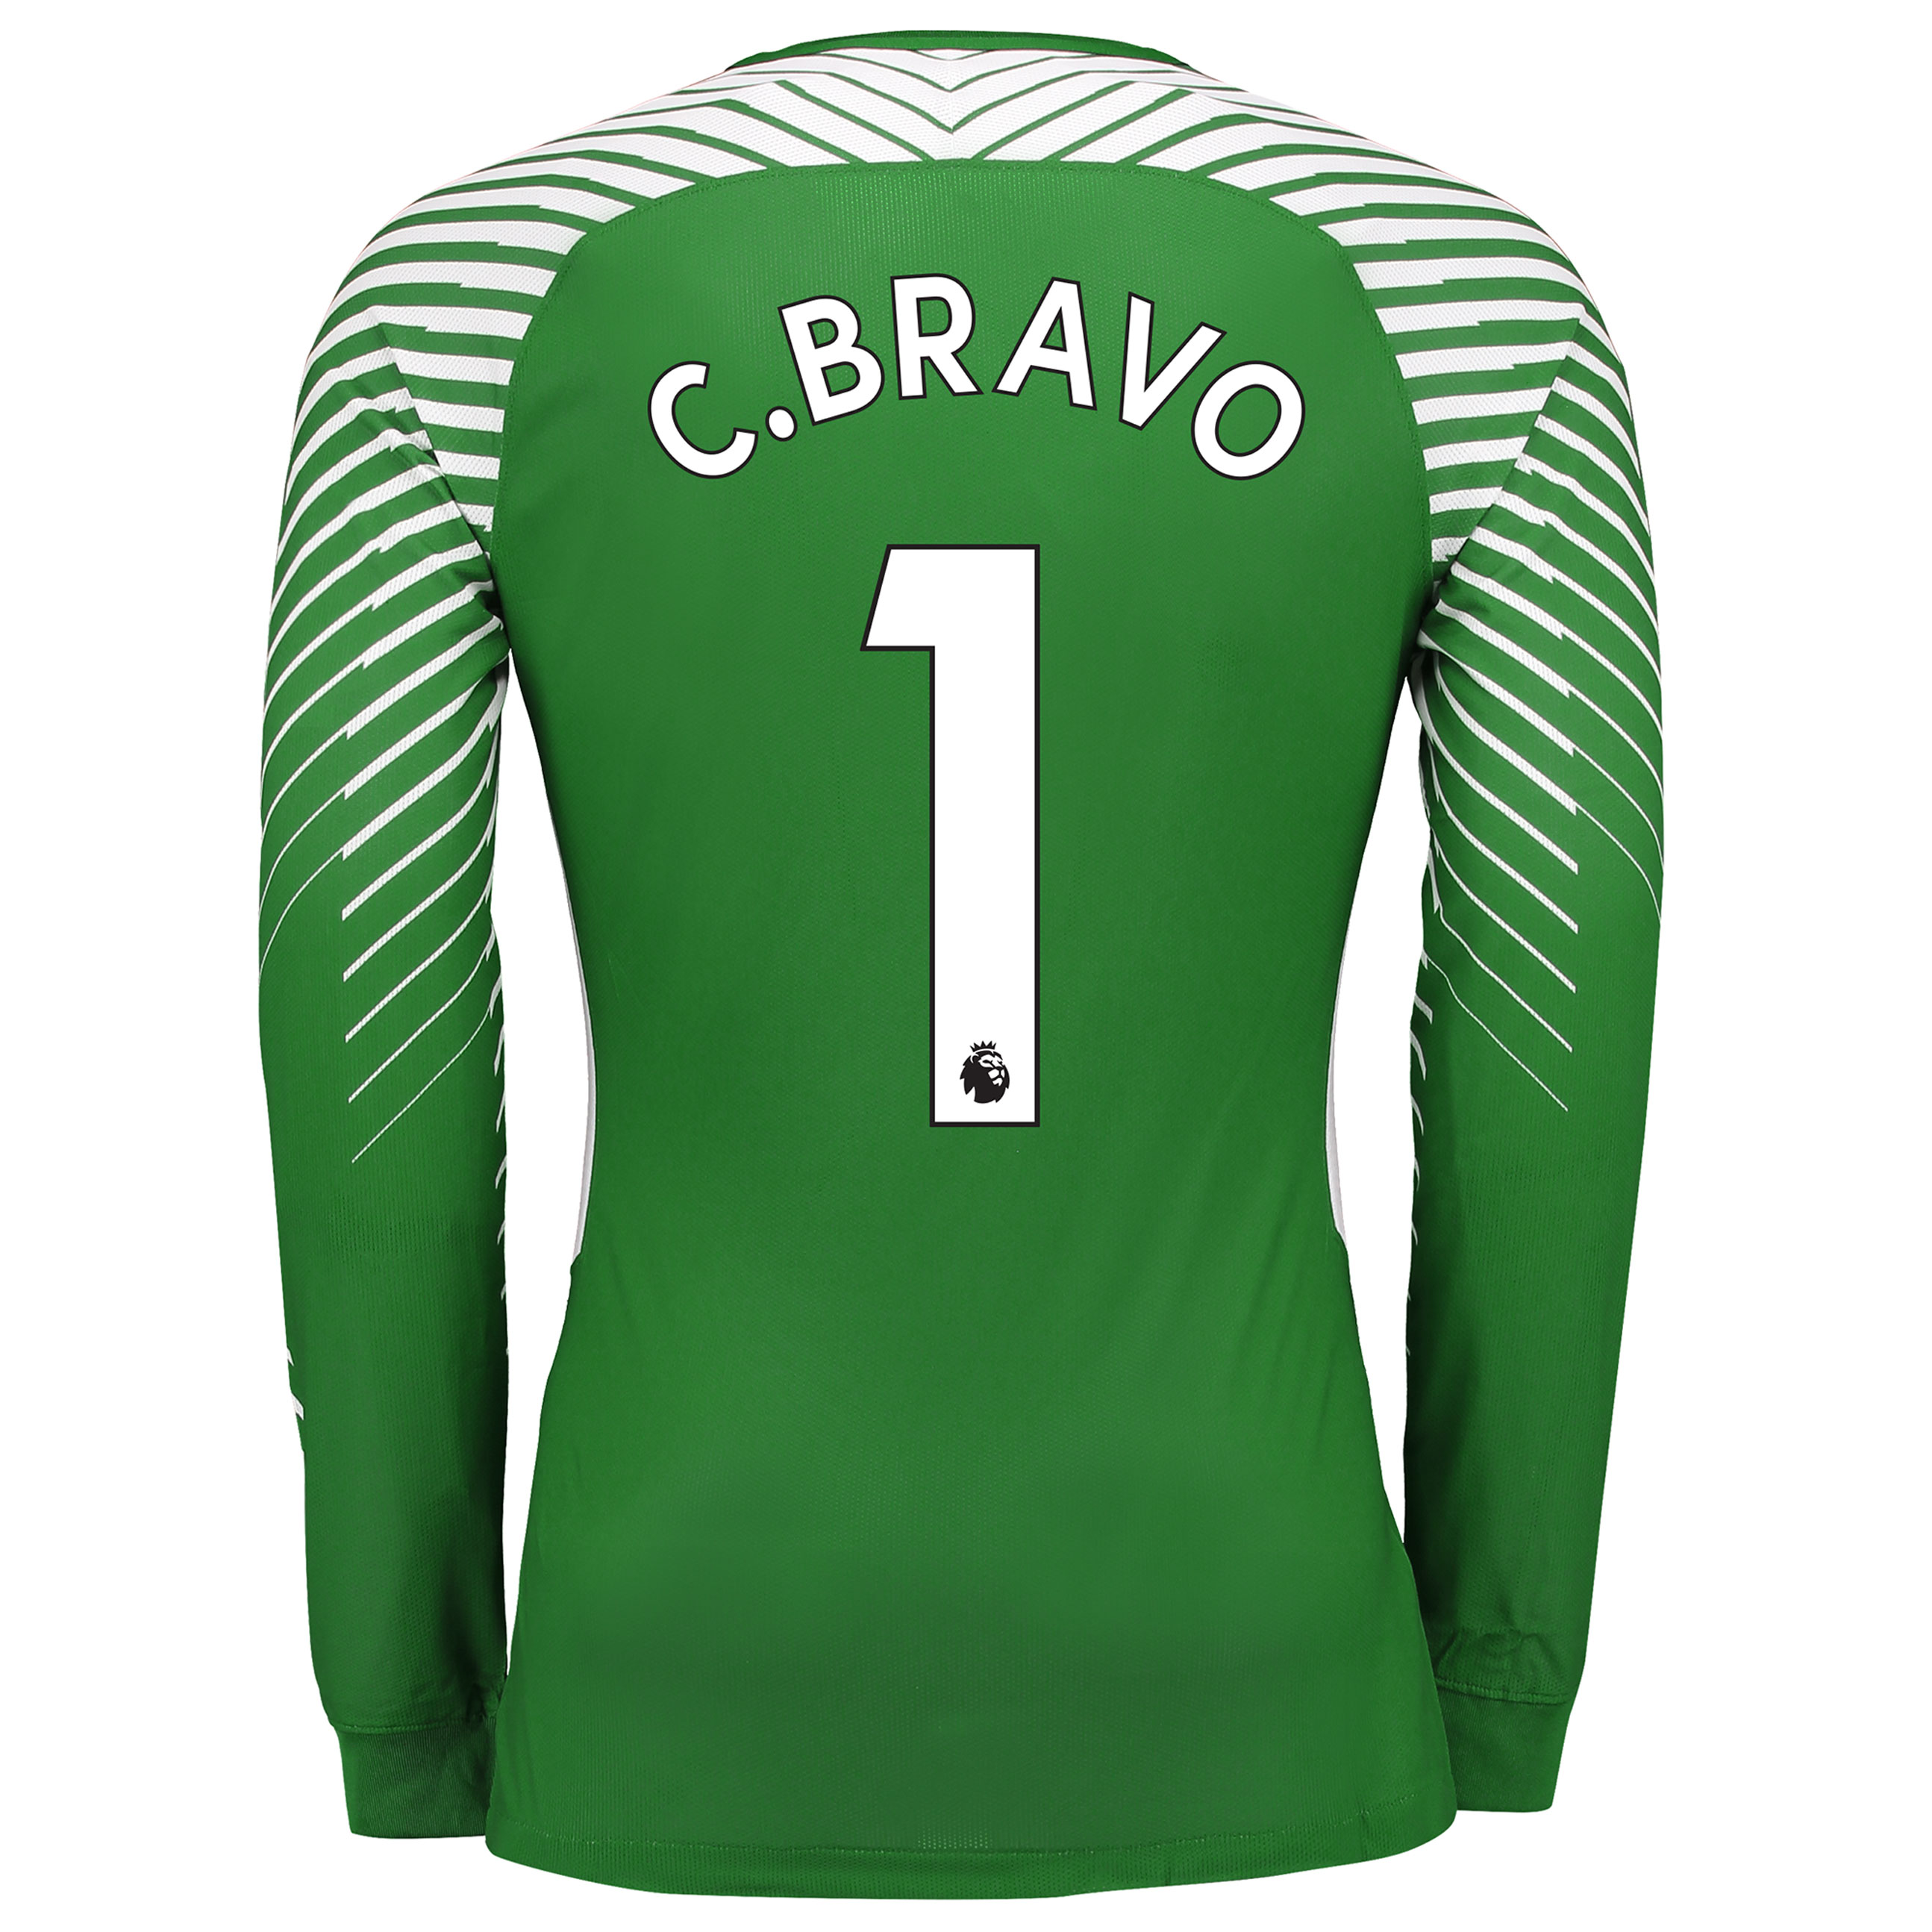 Manchester City Goalkeeper Shirt Shirt 17-18 - Kids with C.Bravo 1 pri